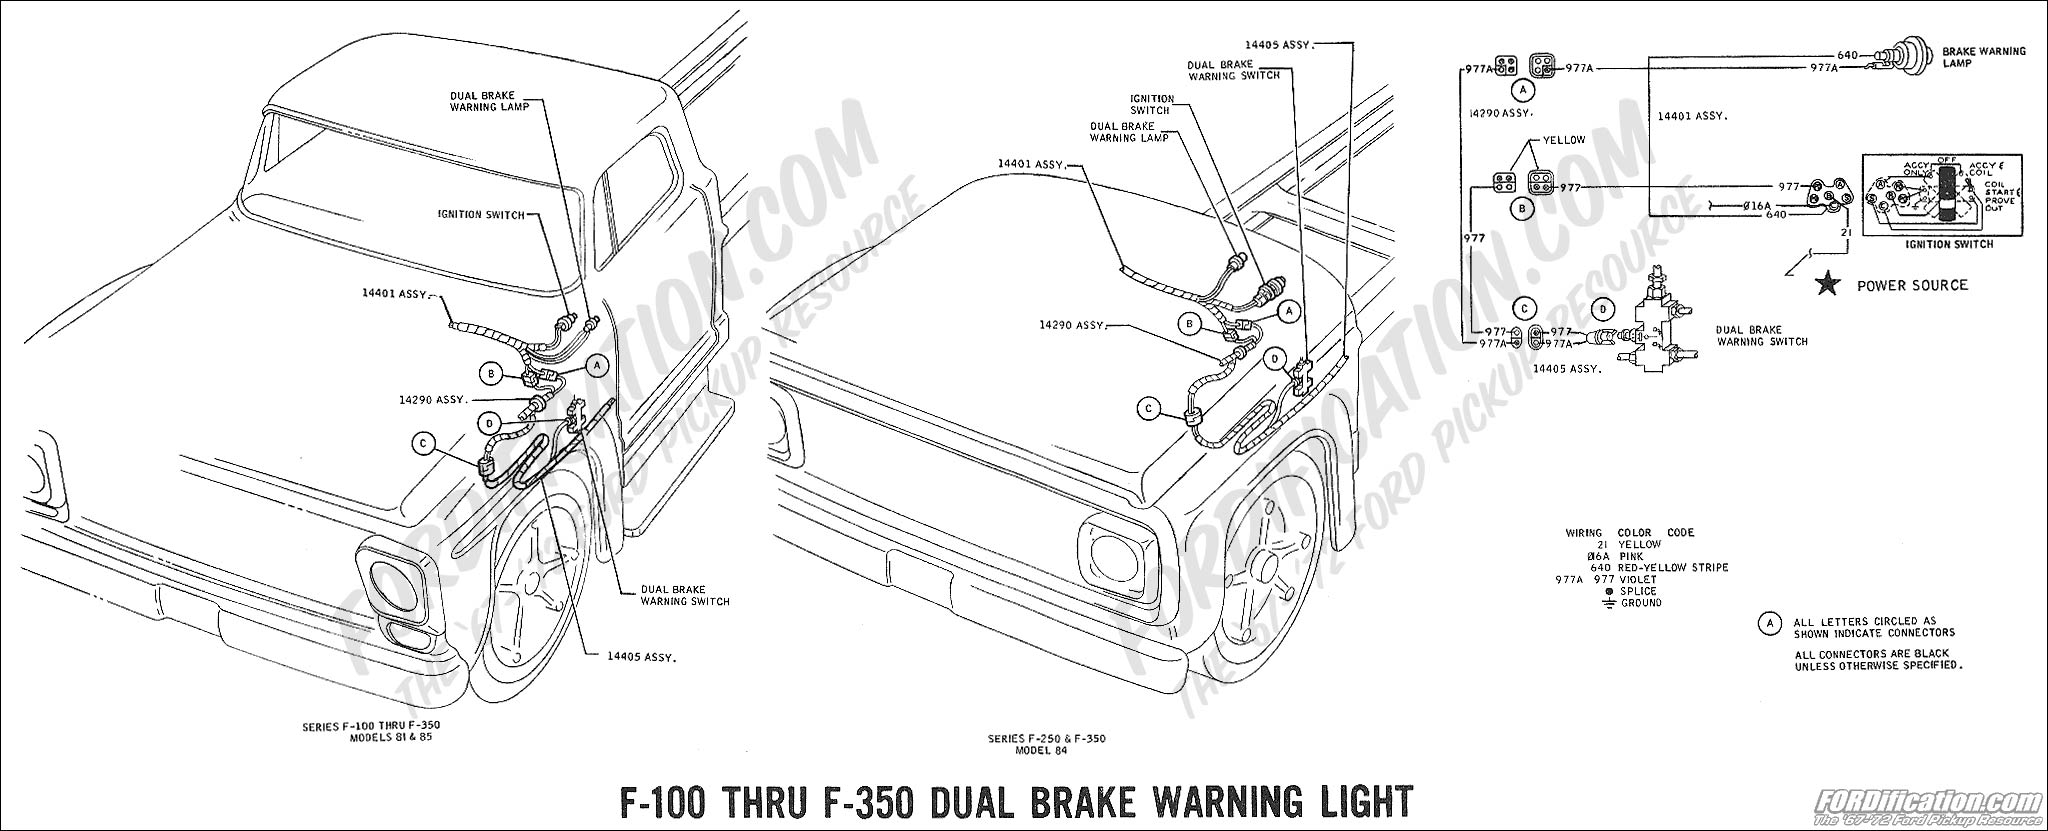 69 F100 Wiring Diagram Ford Truck Enthusiasts Forums